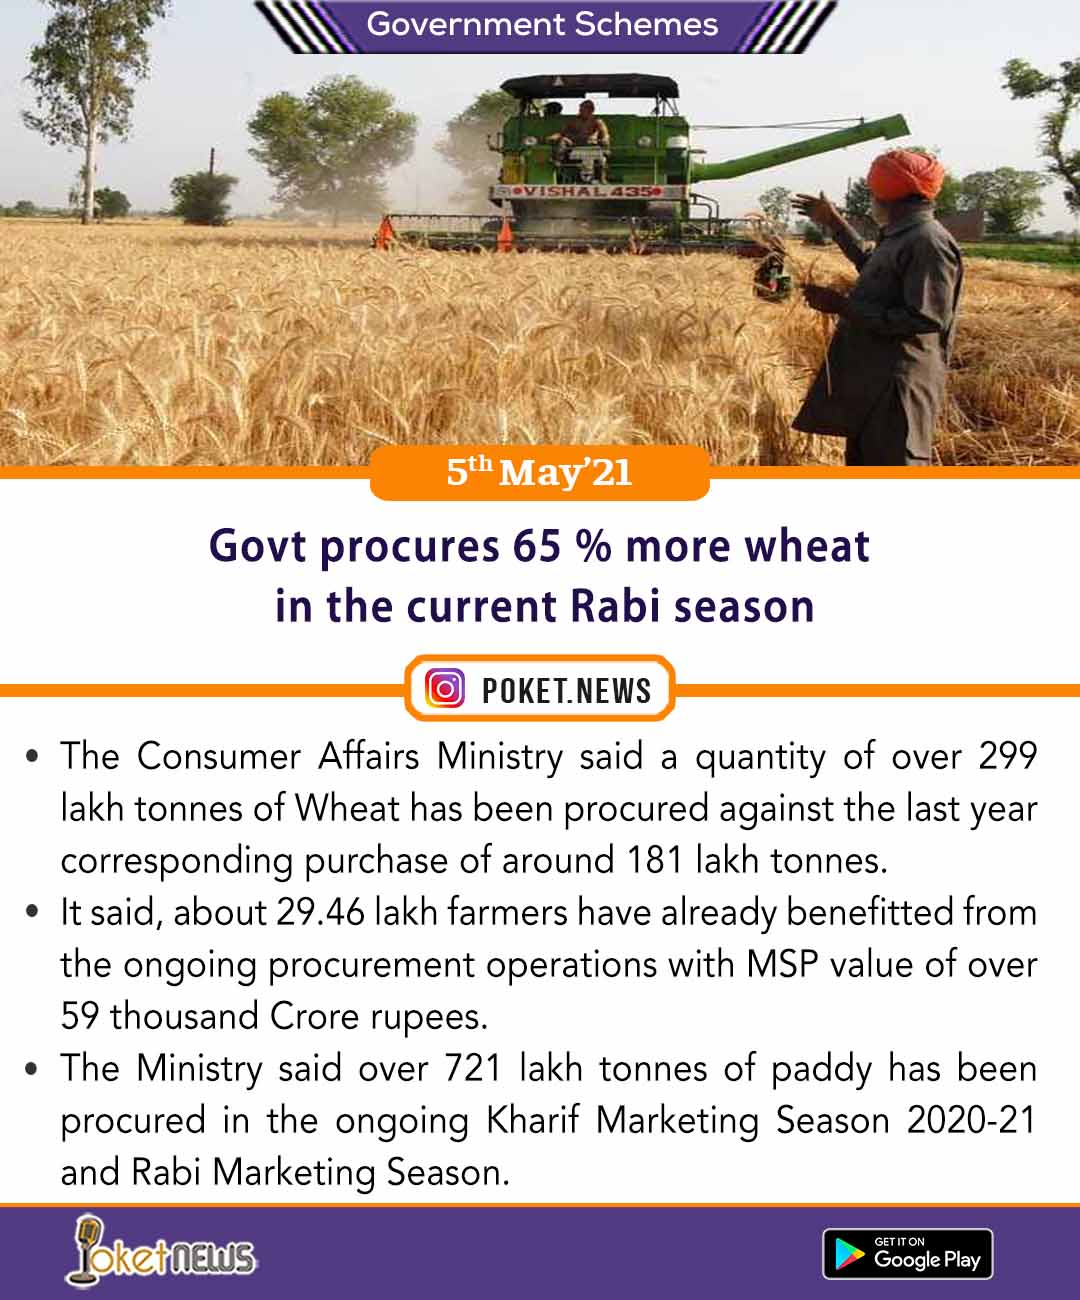 Govt procures 65 % more wheat in the current Rabi season